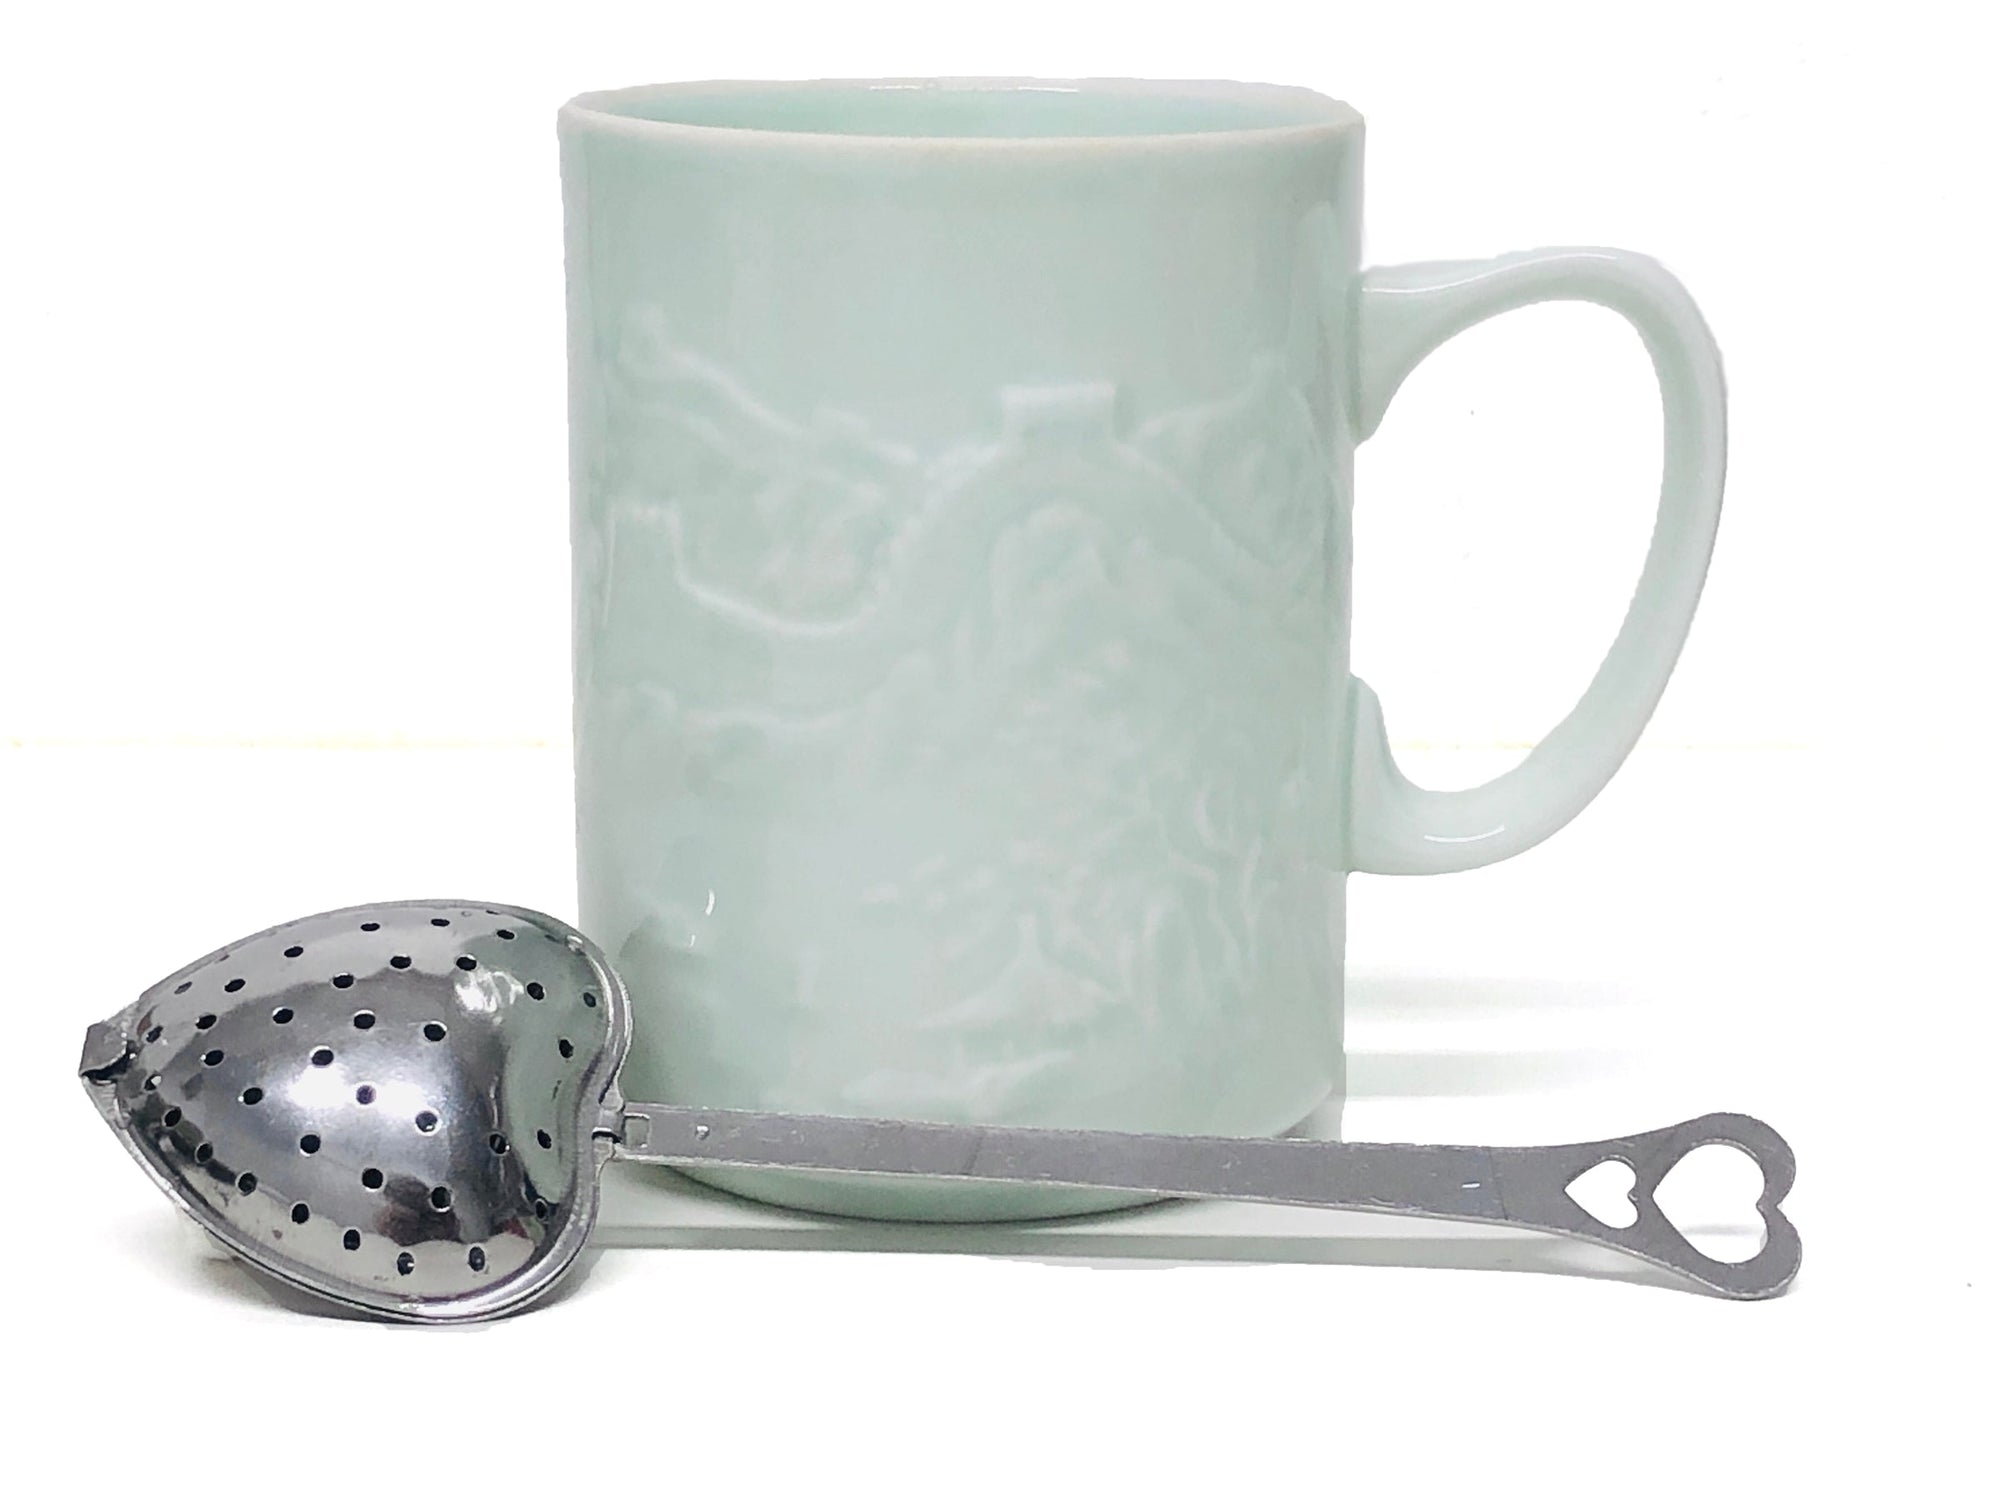 Heart Shaped Tea Strainer